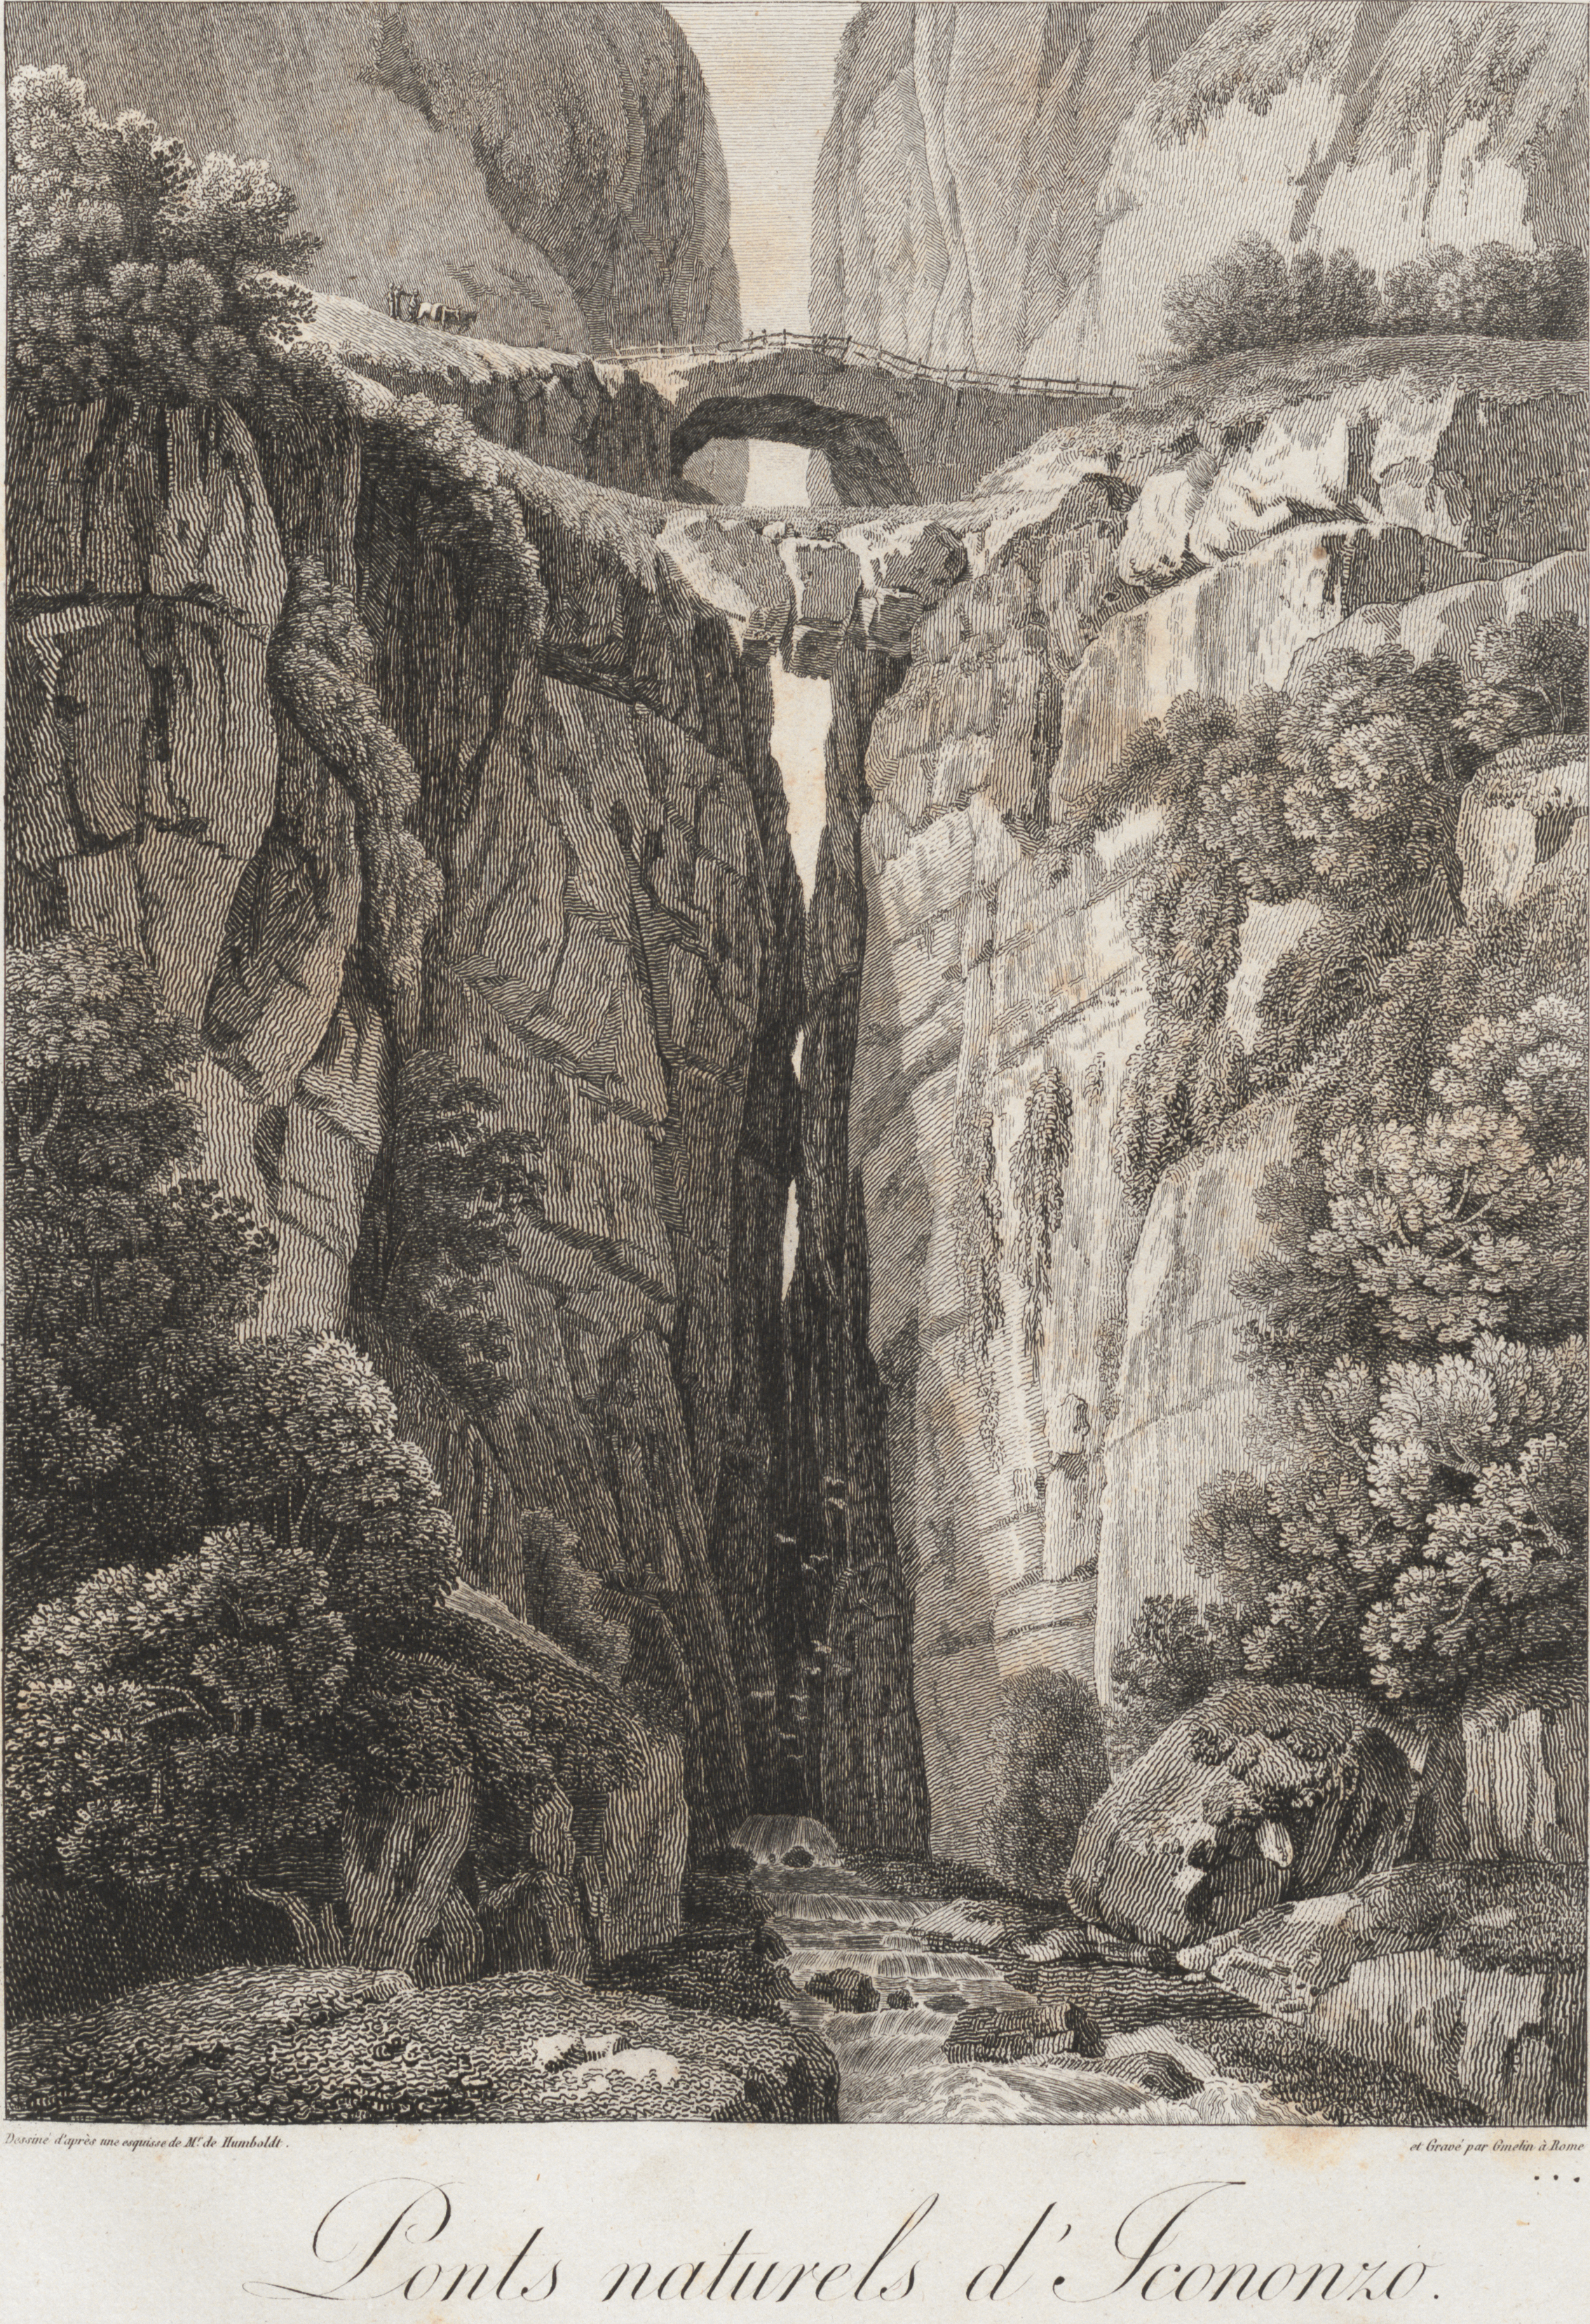 Natural Bridges of Icononzo. Plate 4, Alexander Von Humboldt, Vues des Cordilleres (Paris 1810). Rare Books and Special Collections, University of South Carolina Libraries.